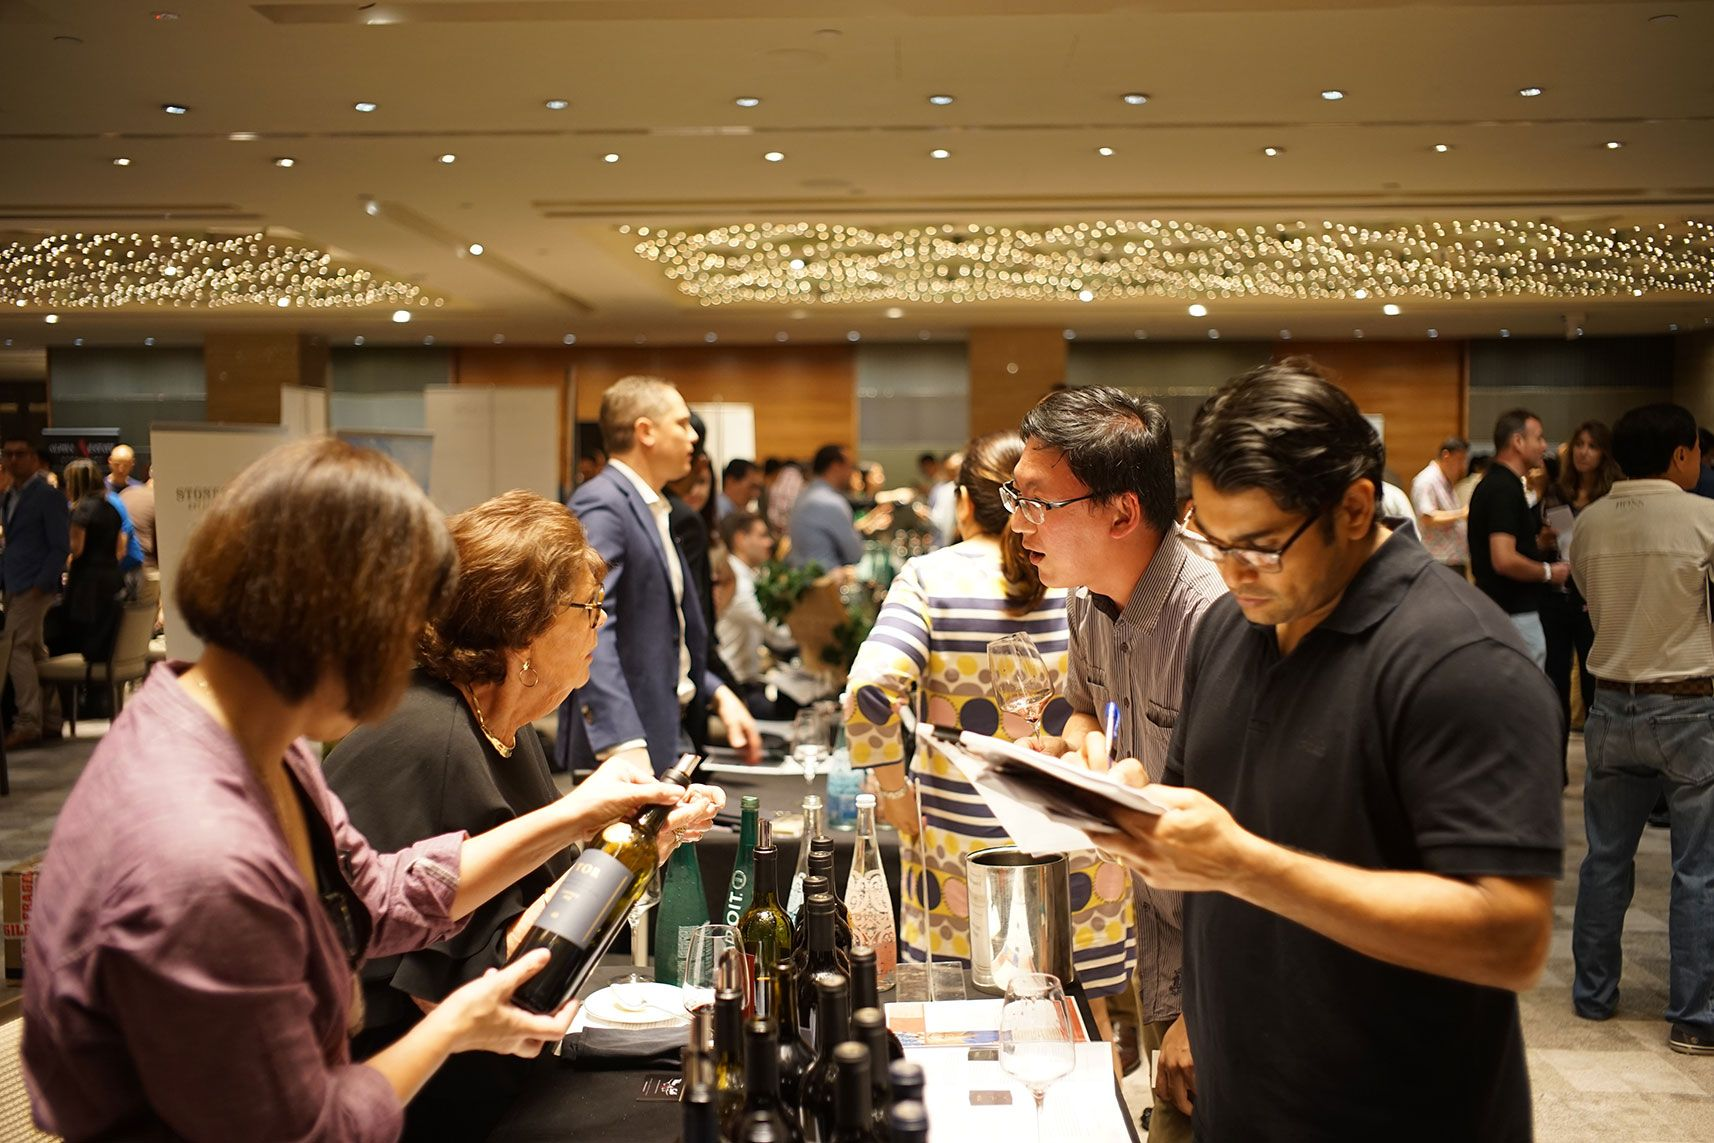 Matter Of Taste 2018 Promises More Amazing Wine Discoveries